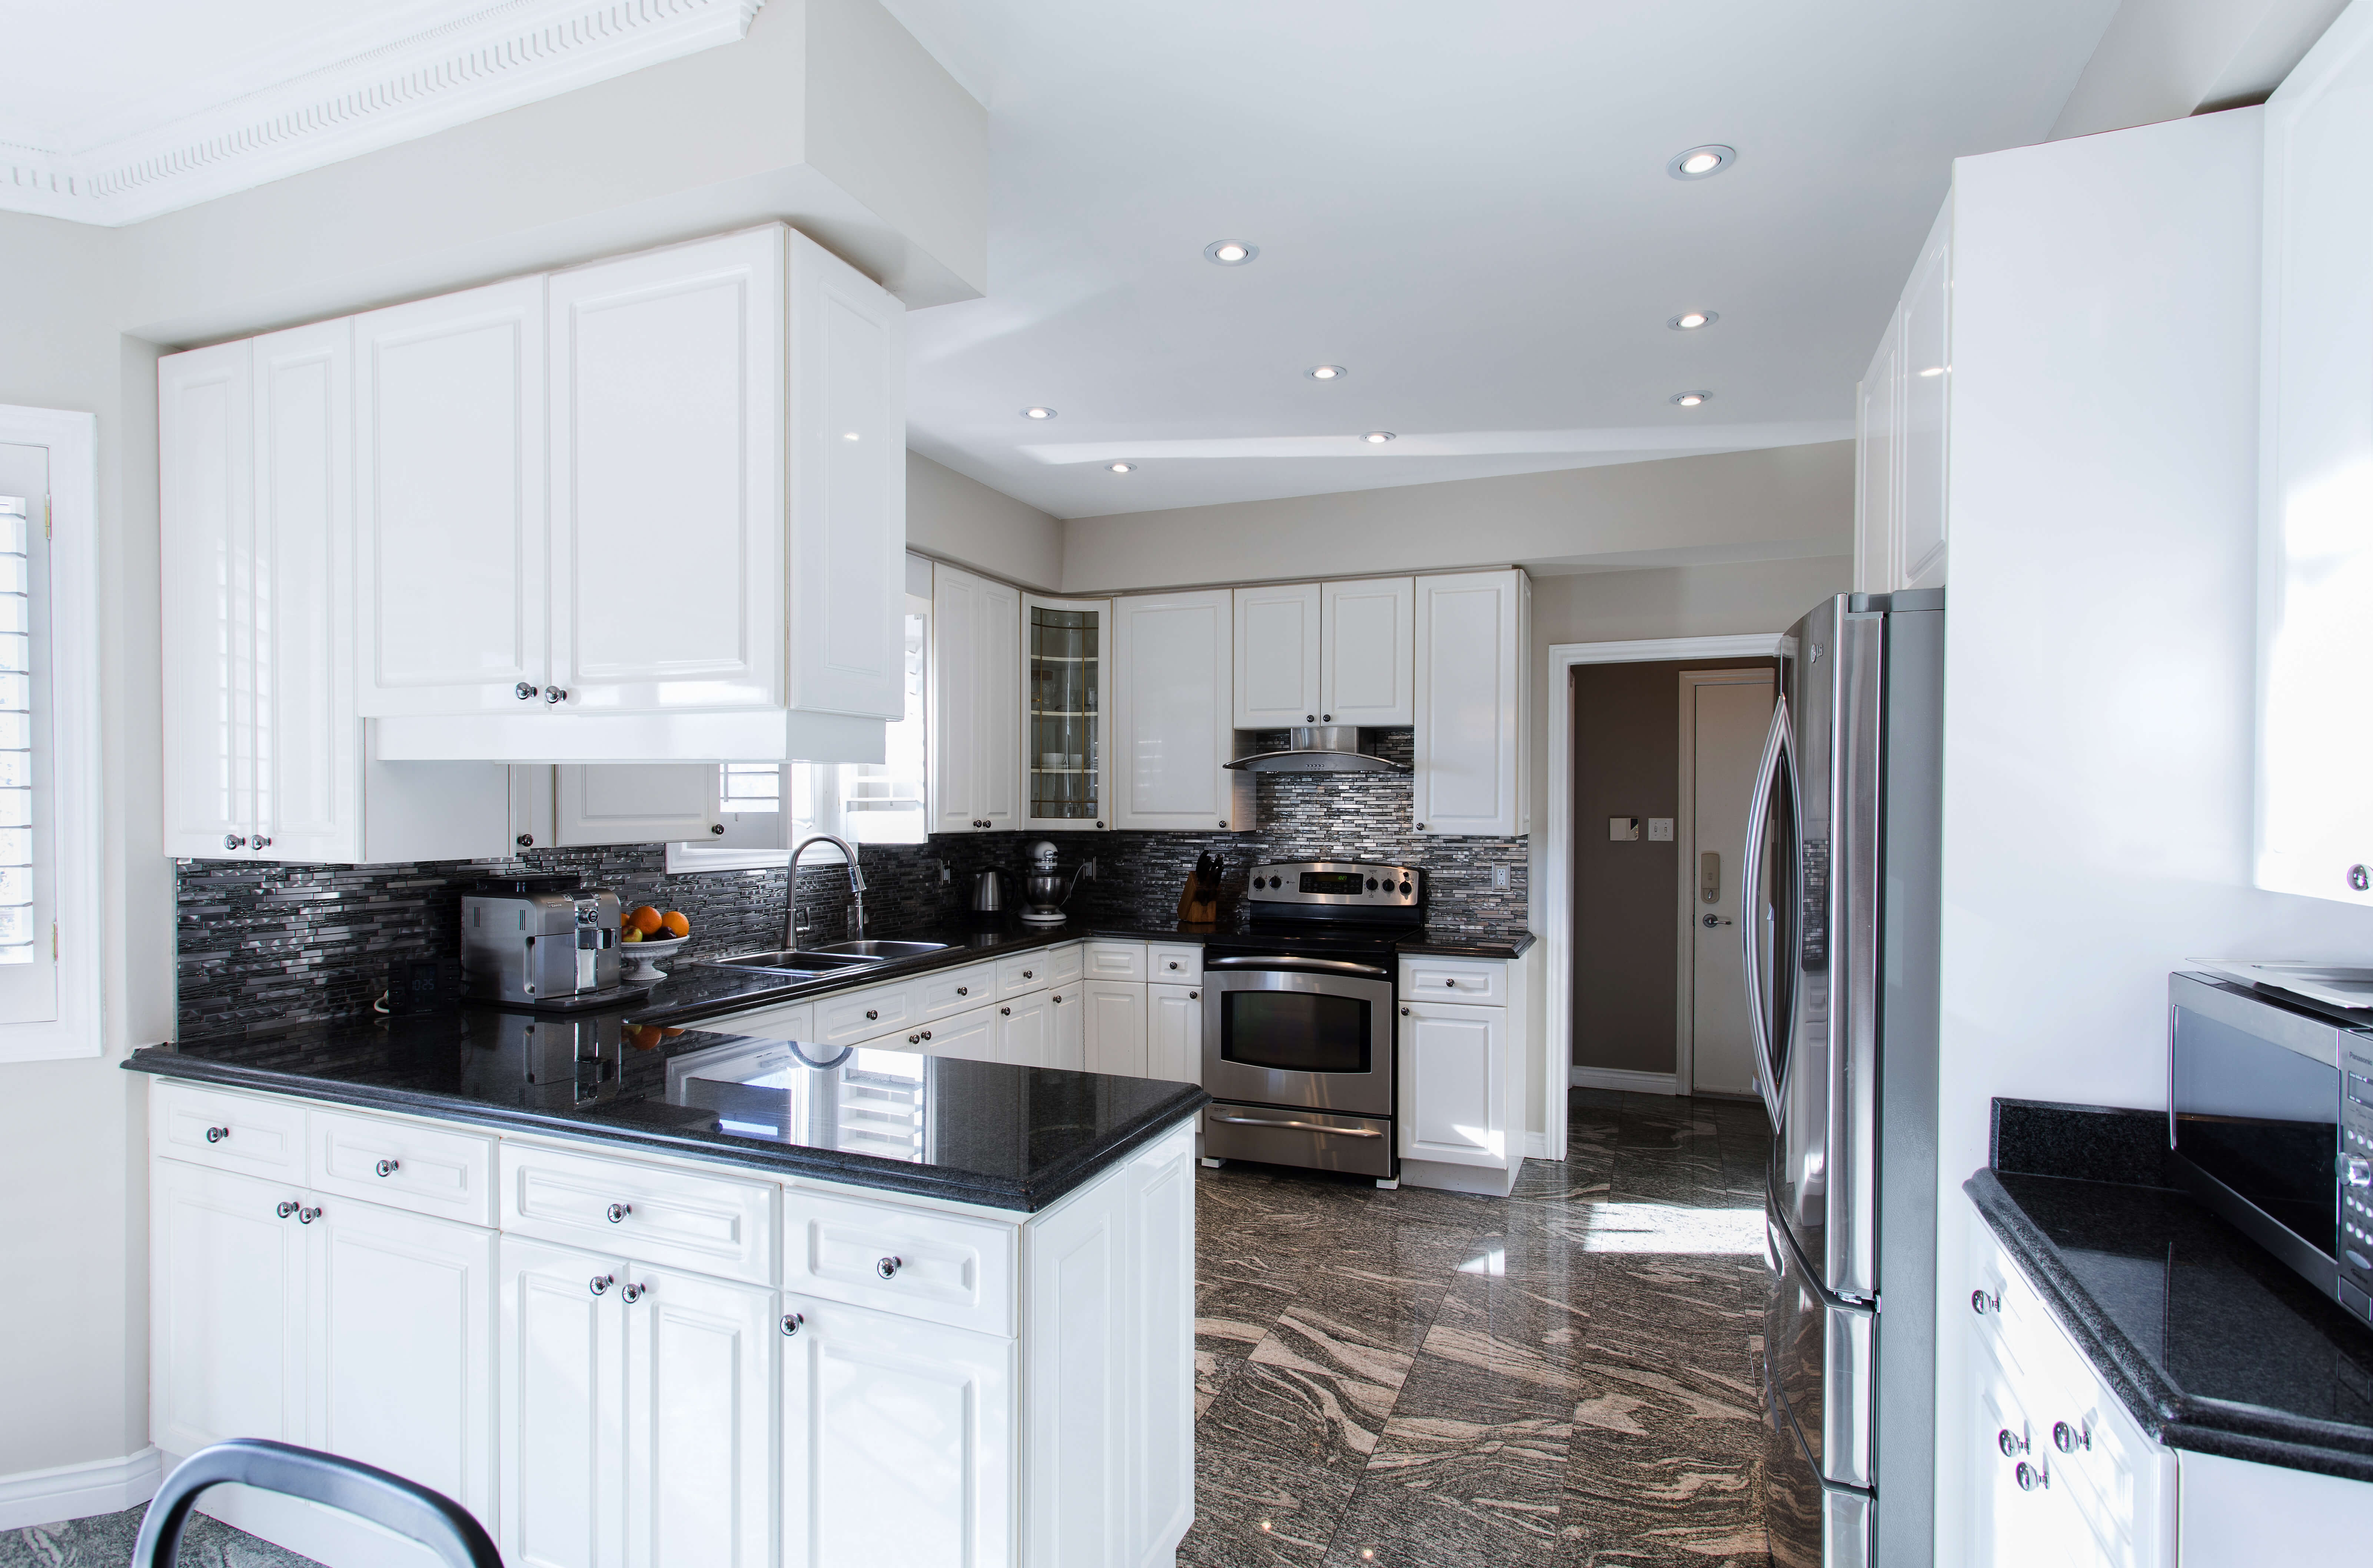 Classic flexible kitchen and its features